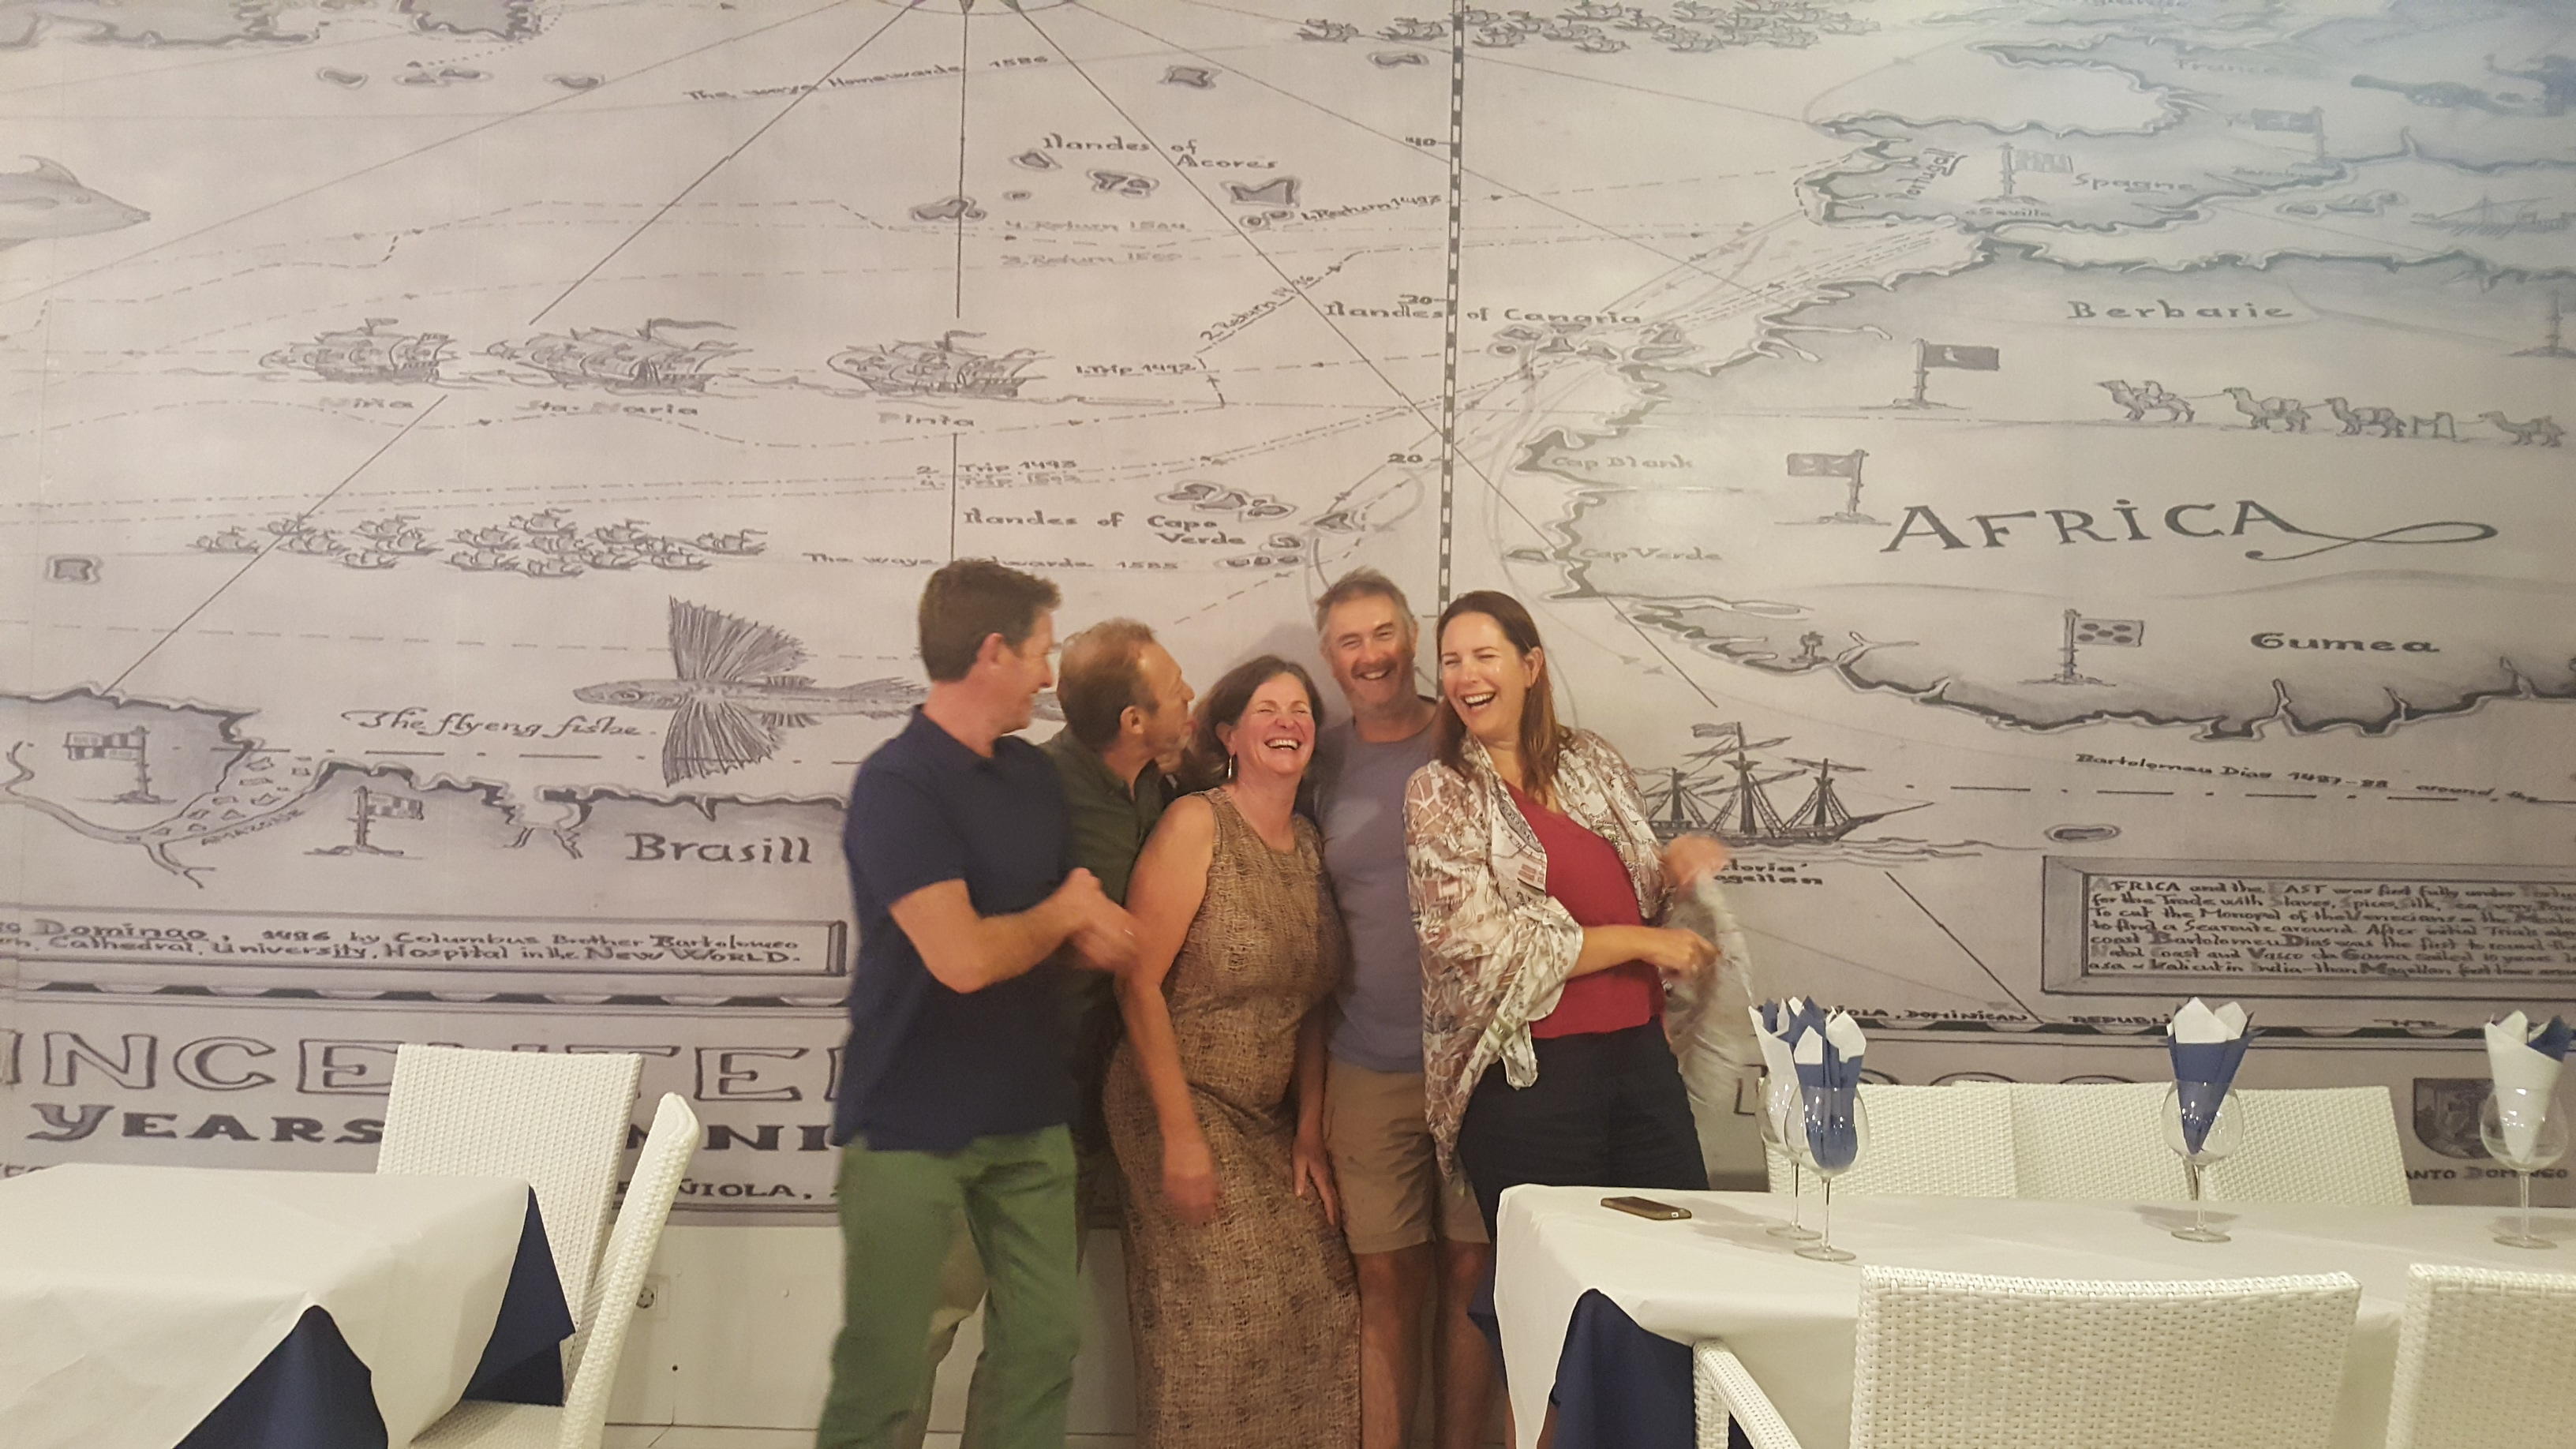 Team shot of the crew stood against a wall showing a map of Africa's west coast, we are all laughing